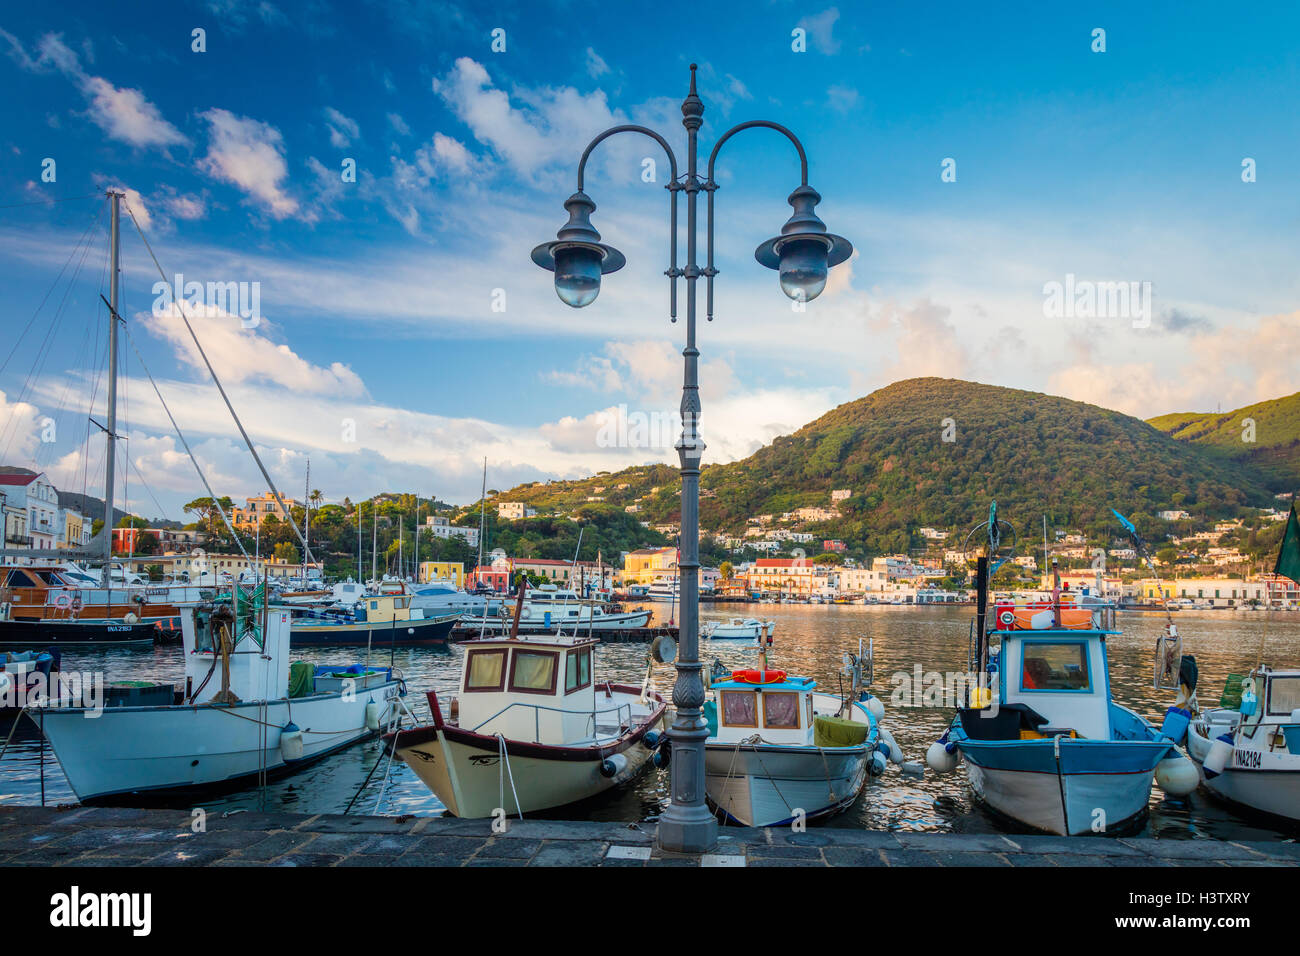 Ischia is a volcanic island in the Tyrrhenian Sea. Seen here is the main commune on the island, Ischia Porto. - Stock Image